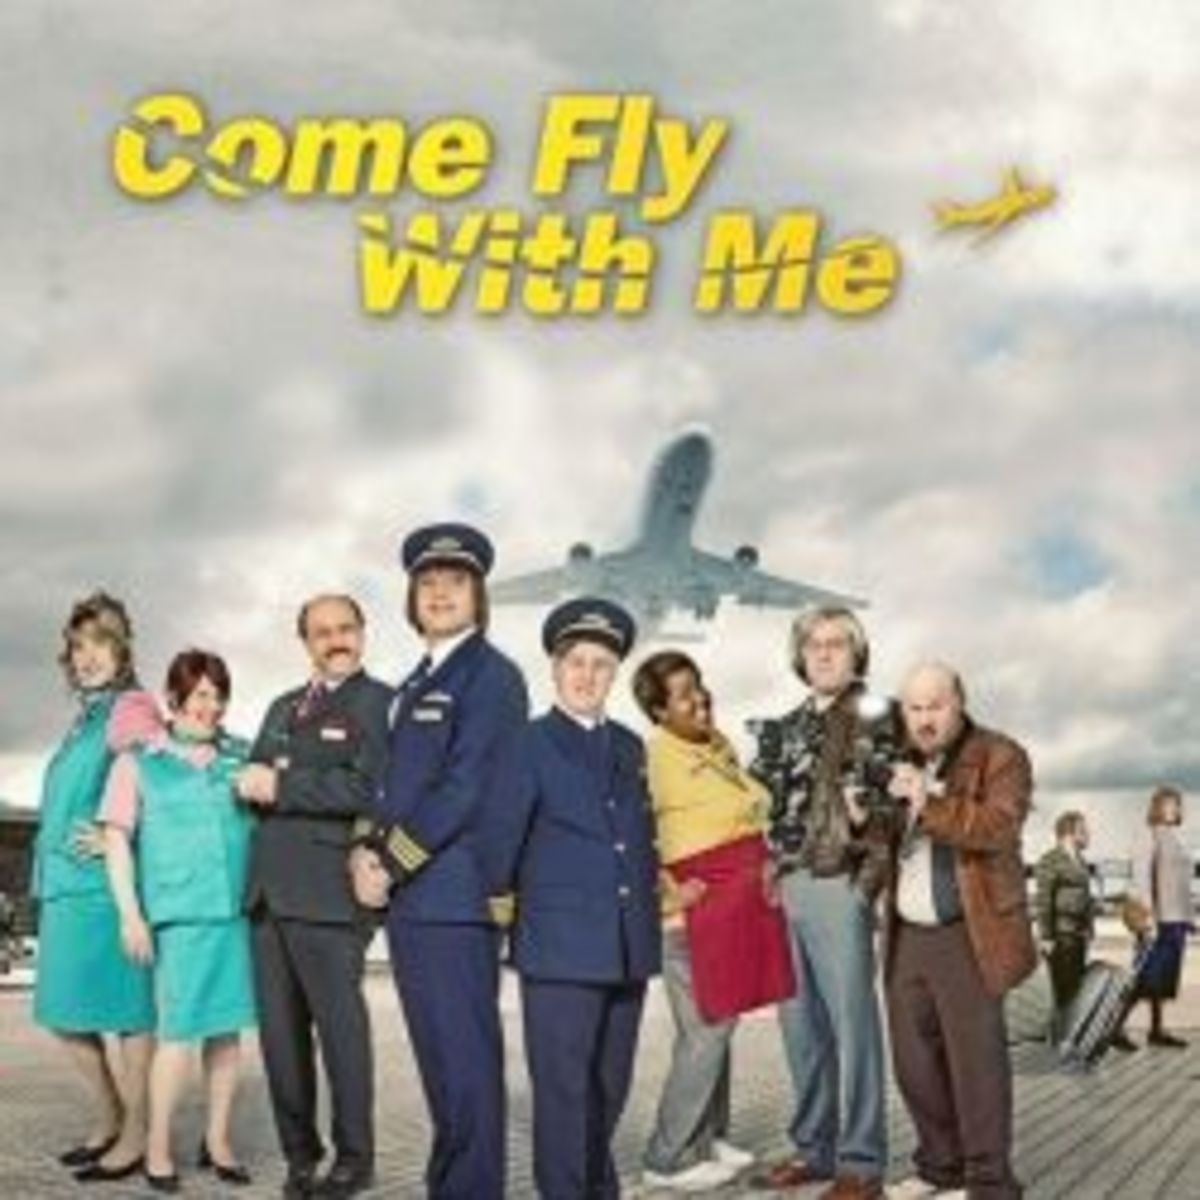 bbcs-hilarious-come-fly-with-me-mocumentary-series